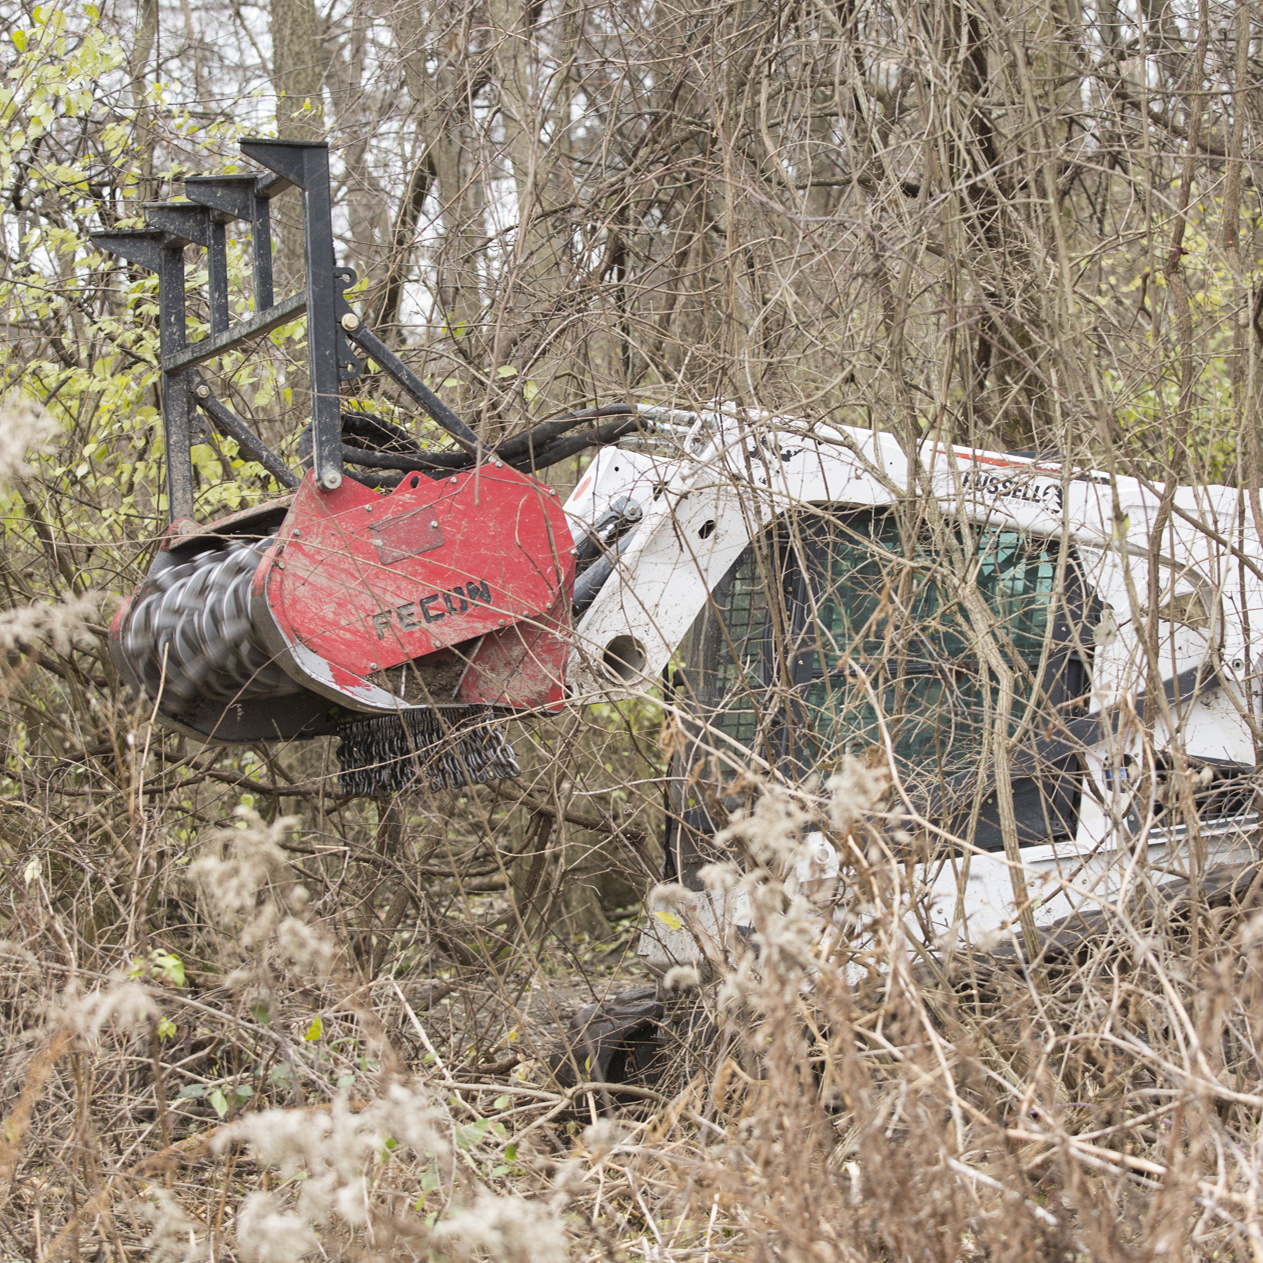 Forestry Mowers - Our high horsepower track loaders can be equipped with tools from forestry mulchers to hydraulic tree shears to grapple buckets saving labor costs and moving operators into FOPS and ROPS certified operators stations.